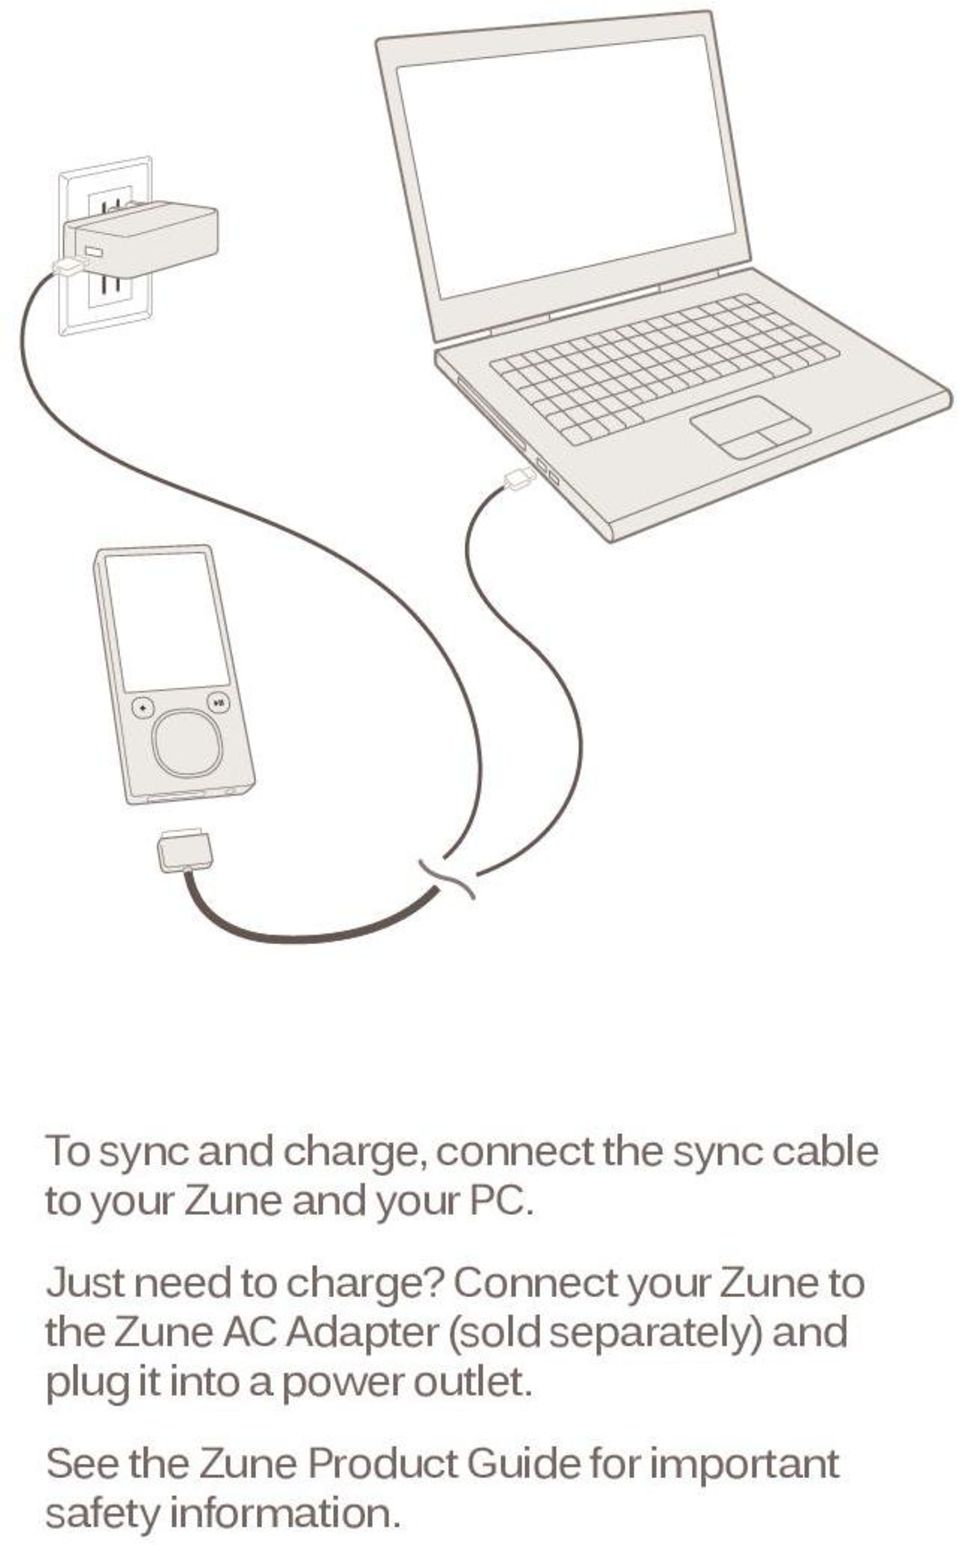 Connect your Zune to the Zune AC Adapter (sold separately)